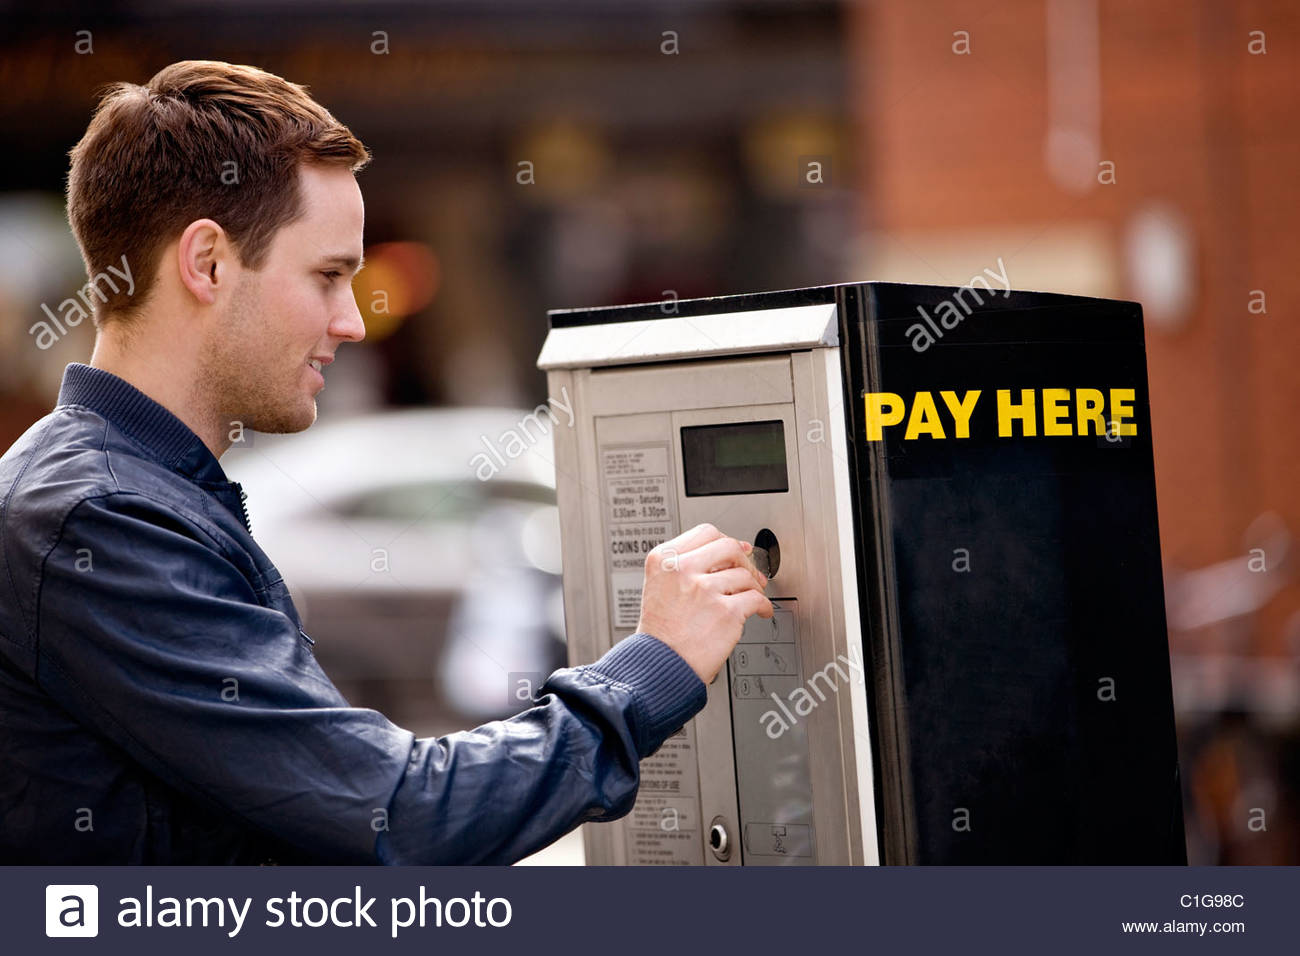 A young man putting coins in a parking meter Stock Photo